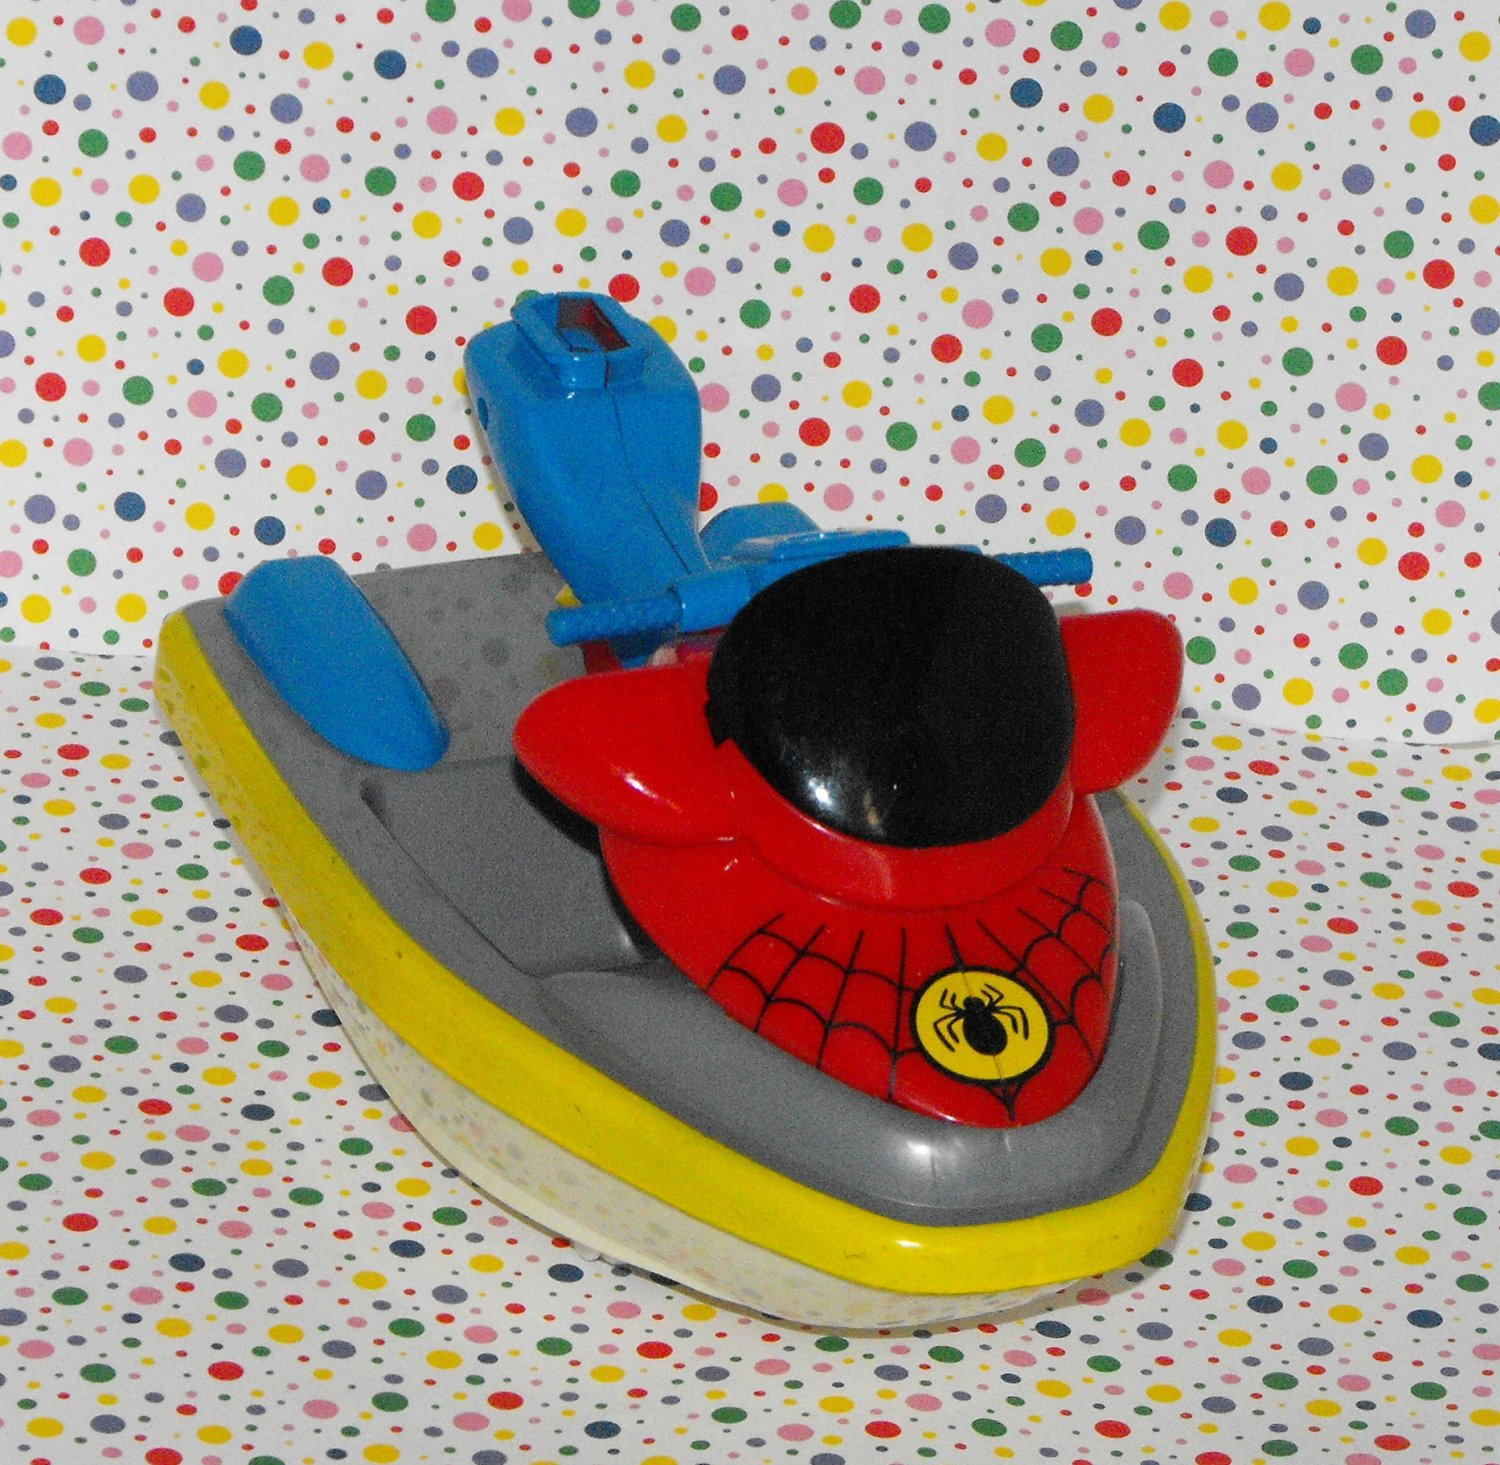 Marvel Spiderman Action Figure Jet Ski Vehicle